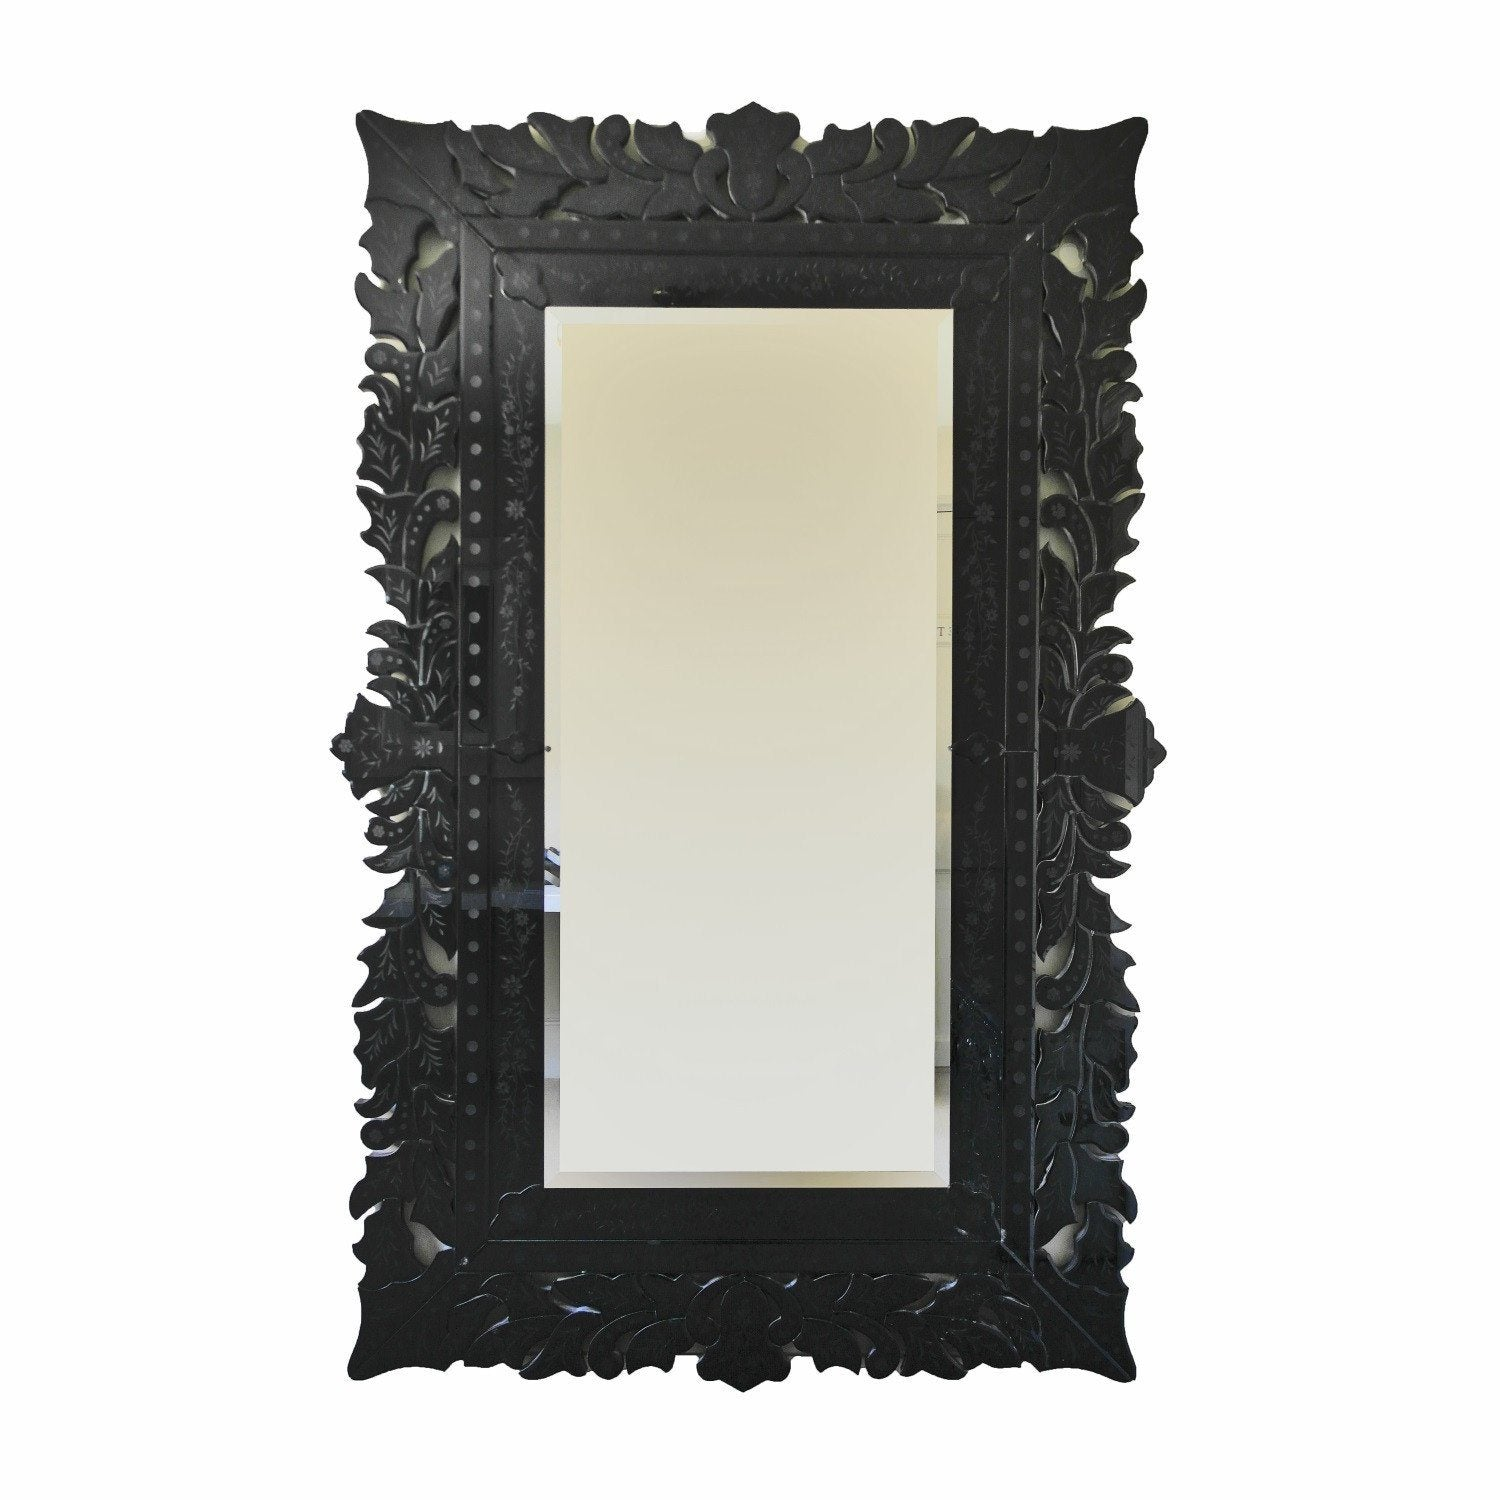 Bregora - Superb large carved mirror